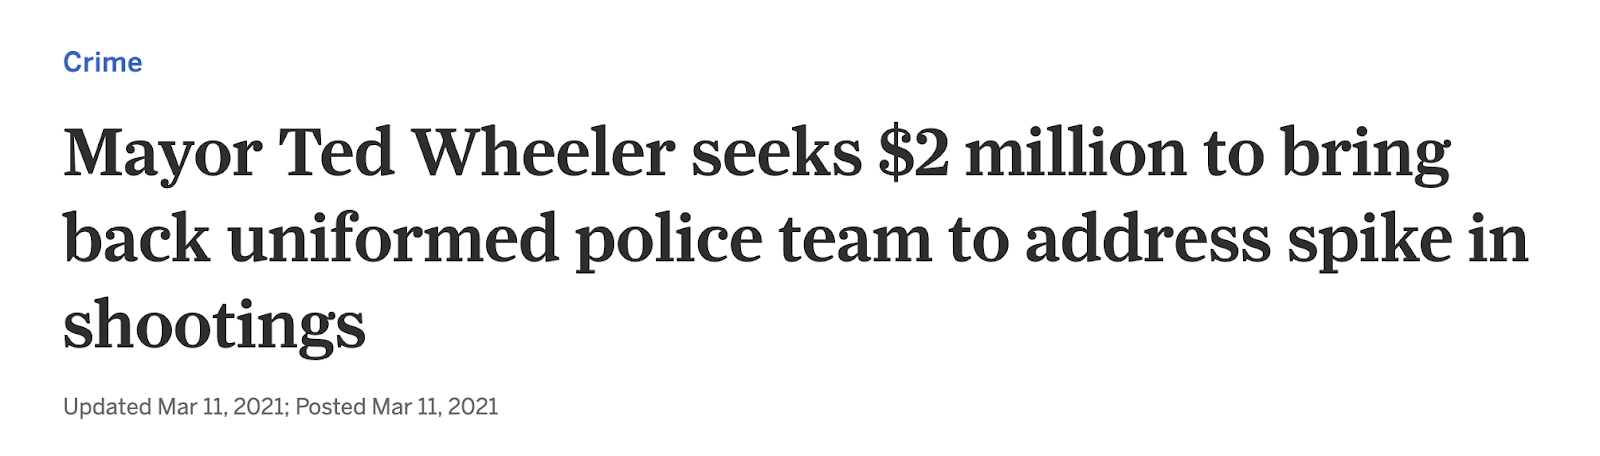 "Screenshot from Oregonian: ""Crime Mayor Ted Wheeler seeks $2 million to bring back uniformed police team to address spike in shootings Updated Mar 11, 2021; Posted Mar 11, 2021"""